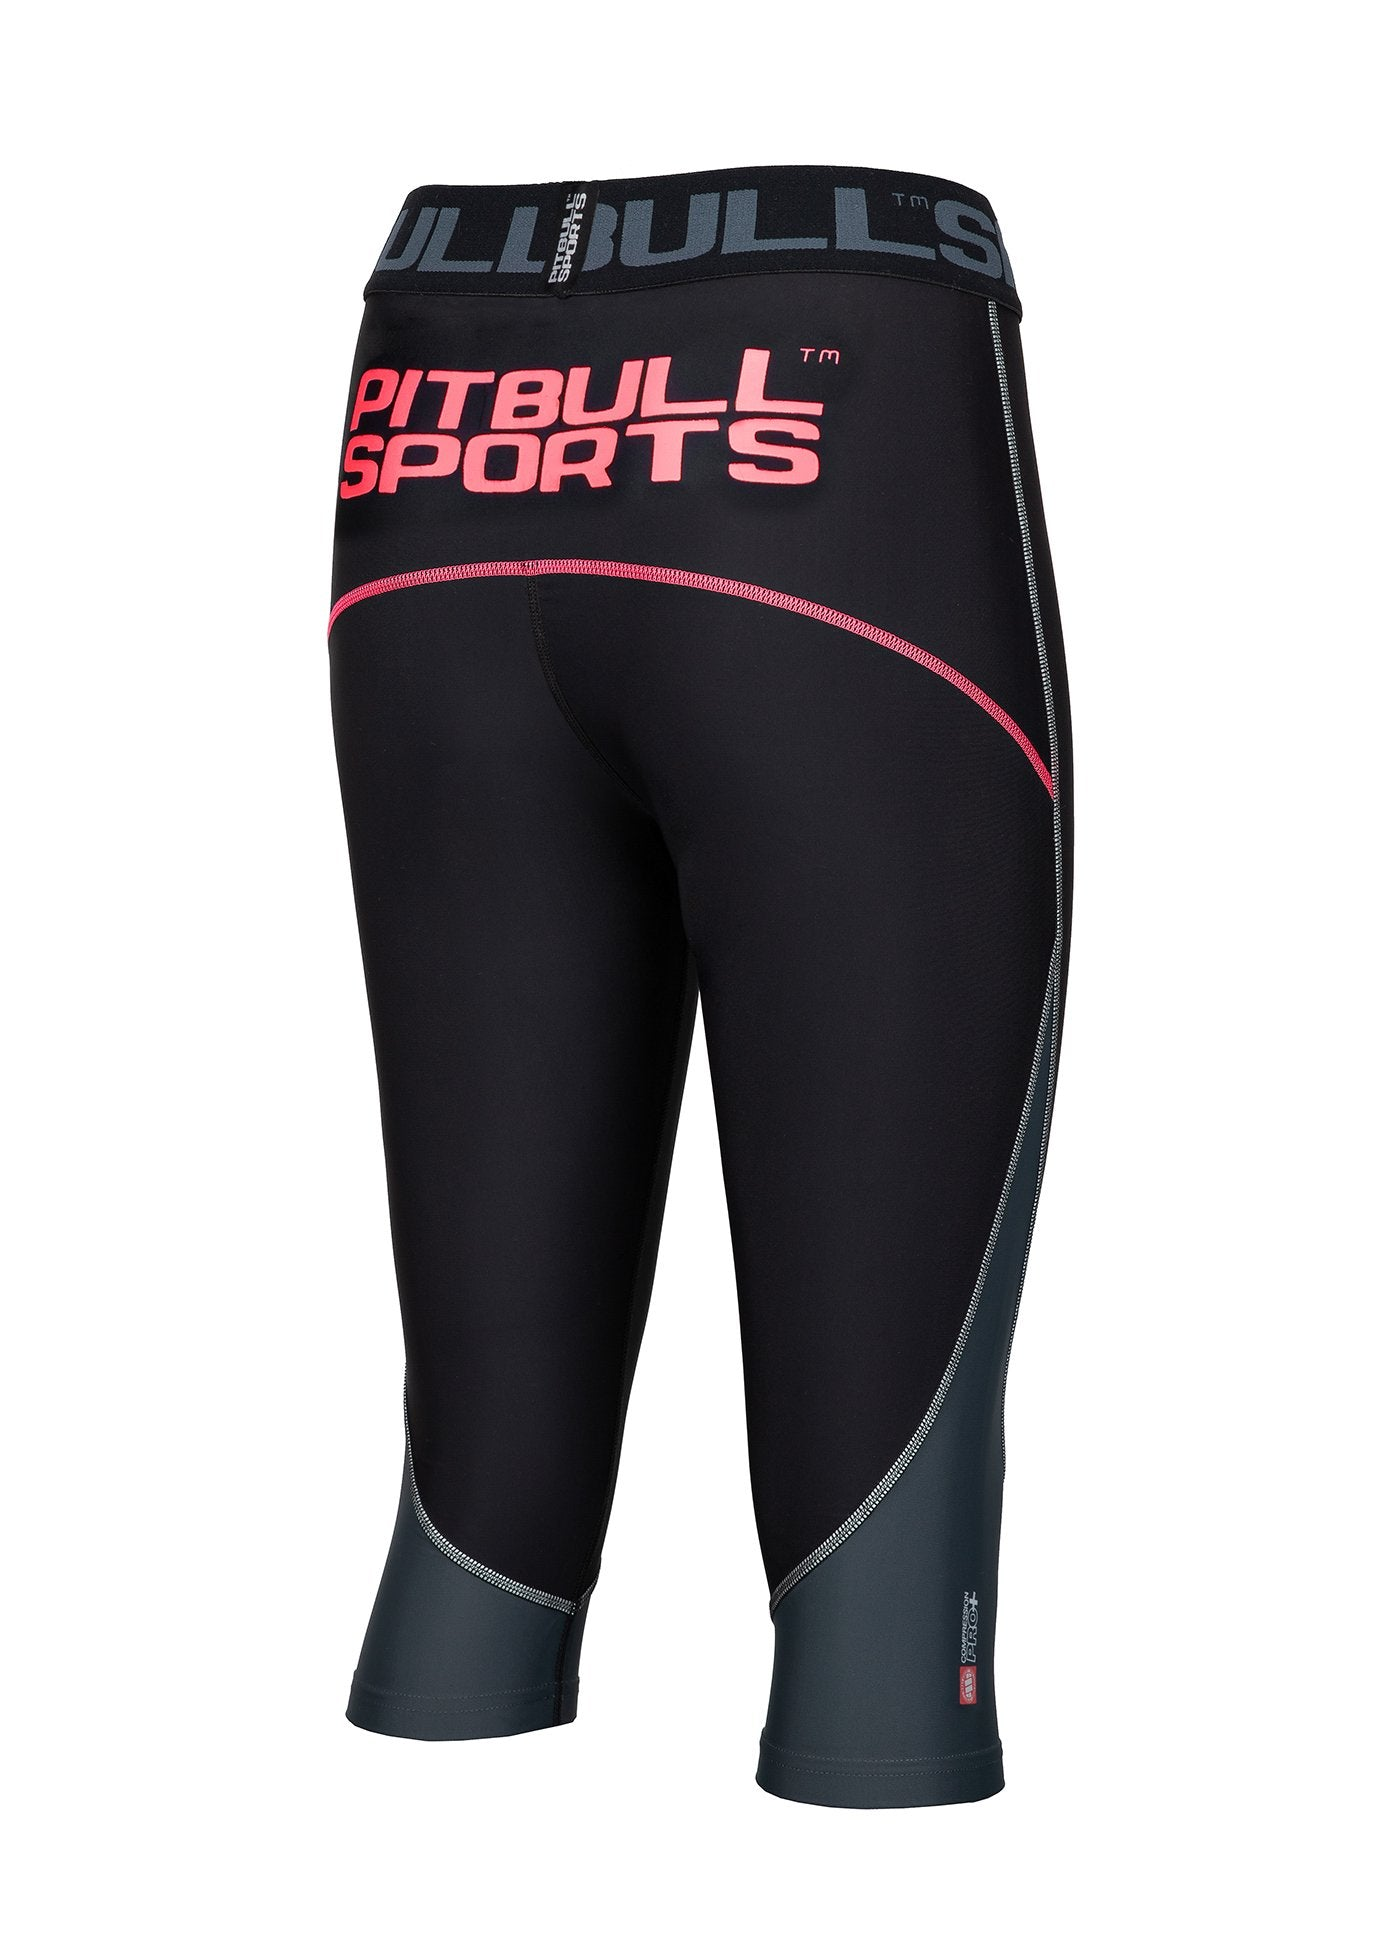 Women's Short Leggins Compression PRO PLUS Pink - Pitbull West Coast U.S.A.